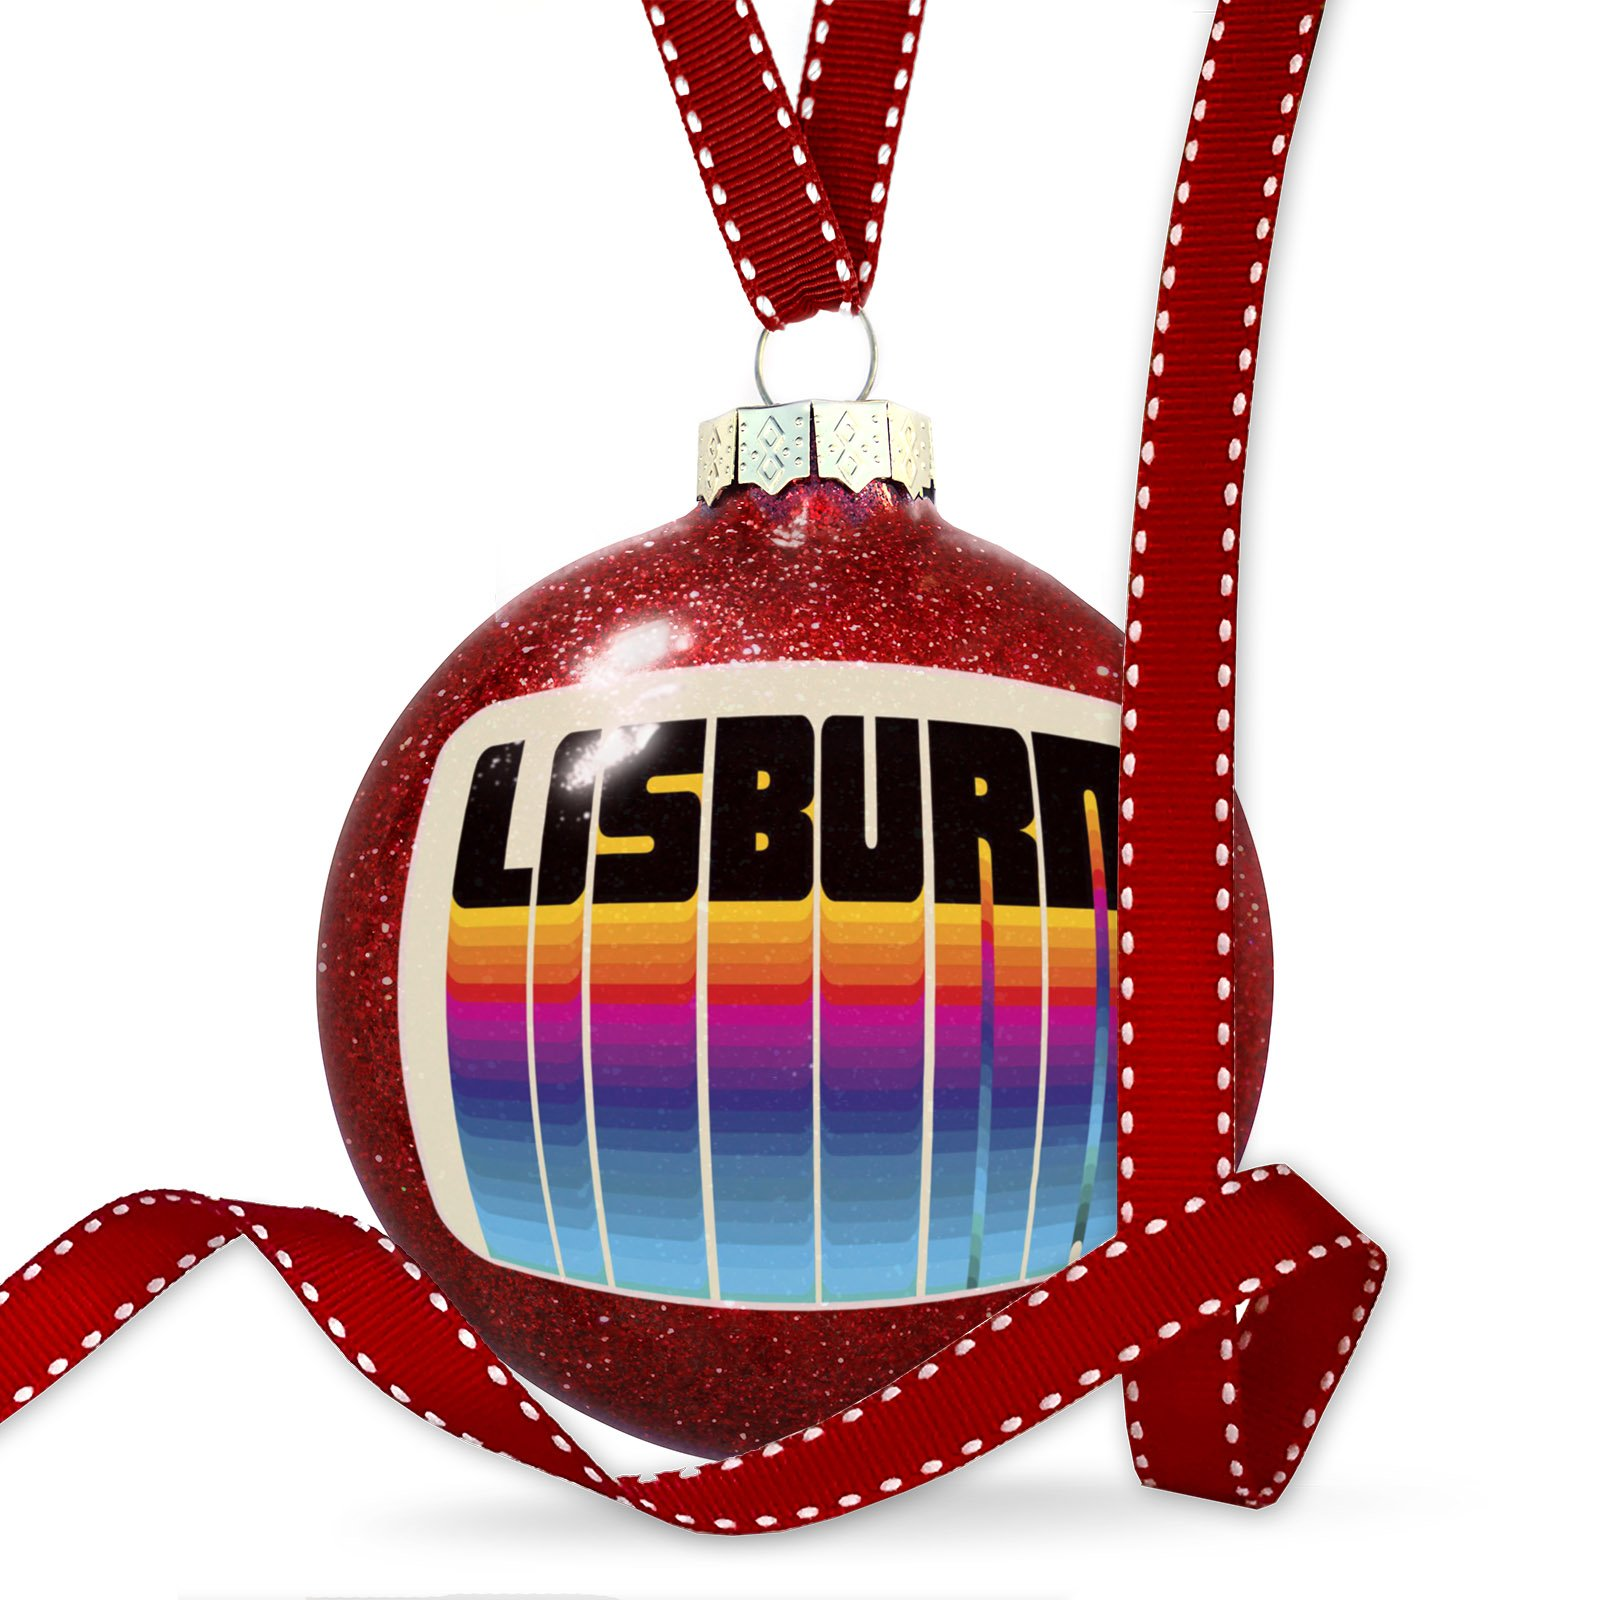 Christmas Decoration Retro Cites States Countries Lisburn Ornament